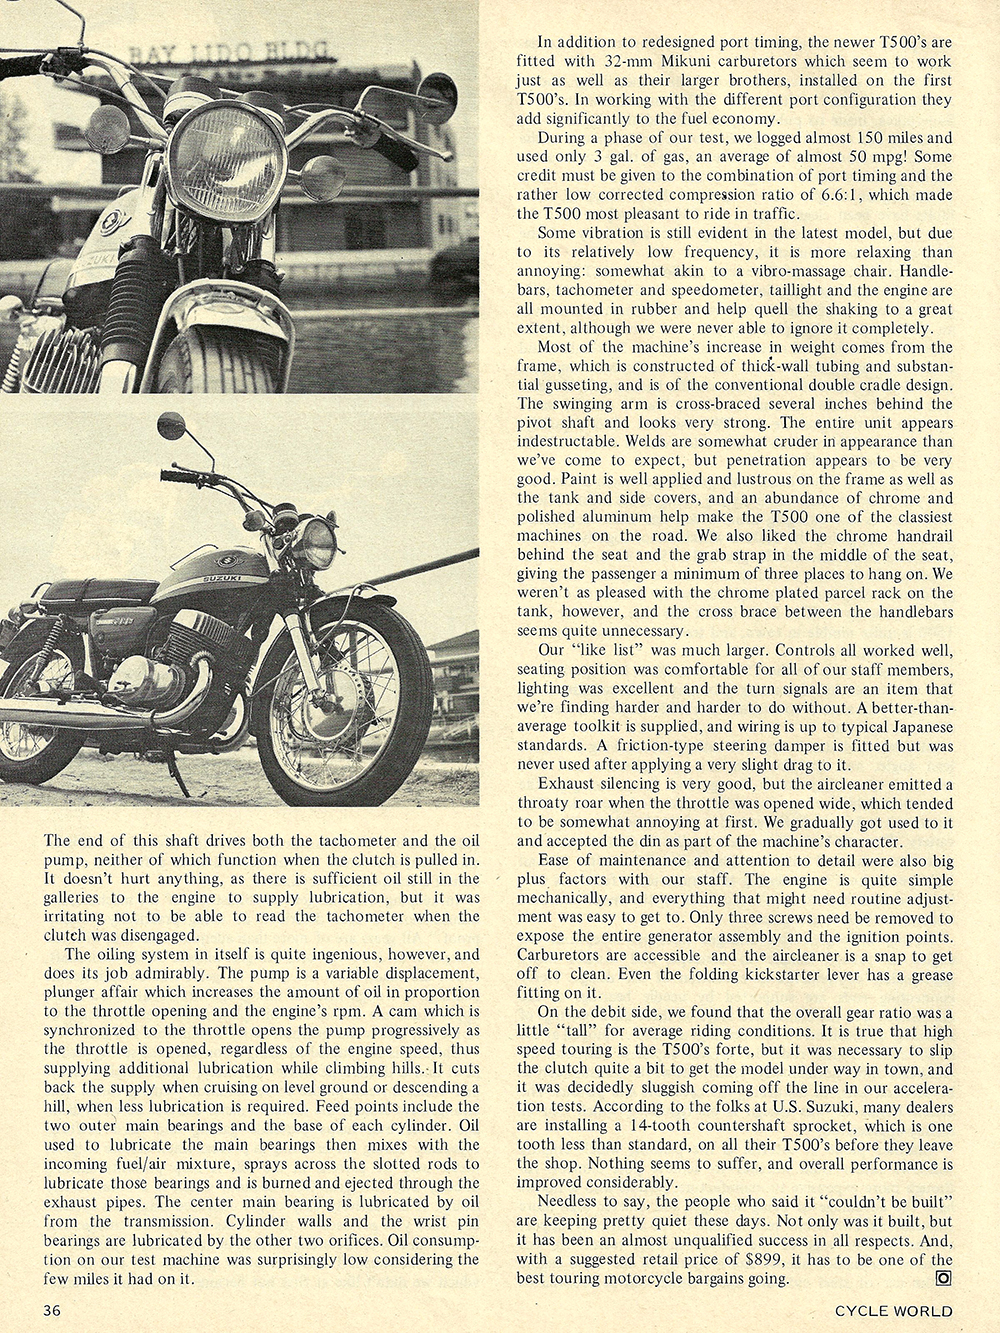 1970 Suzuki T500 III road test 03.jpg